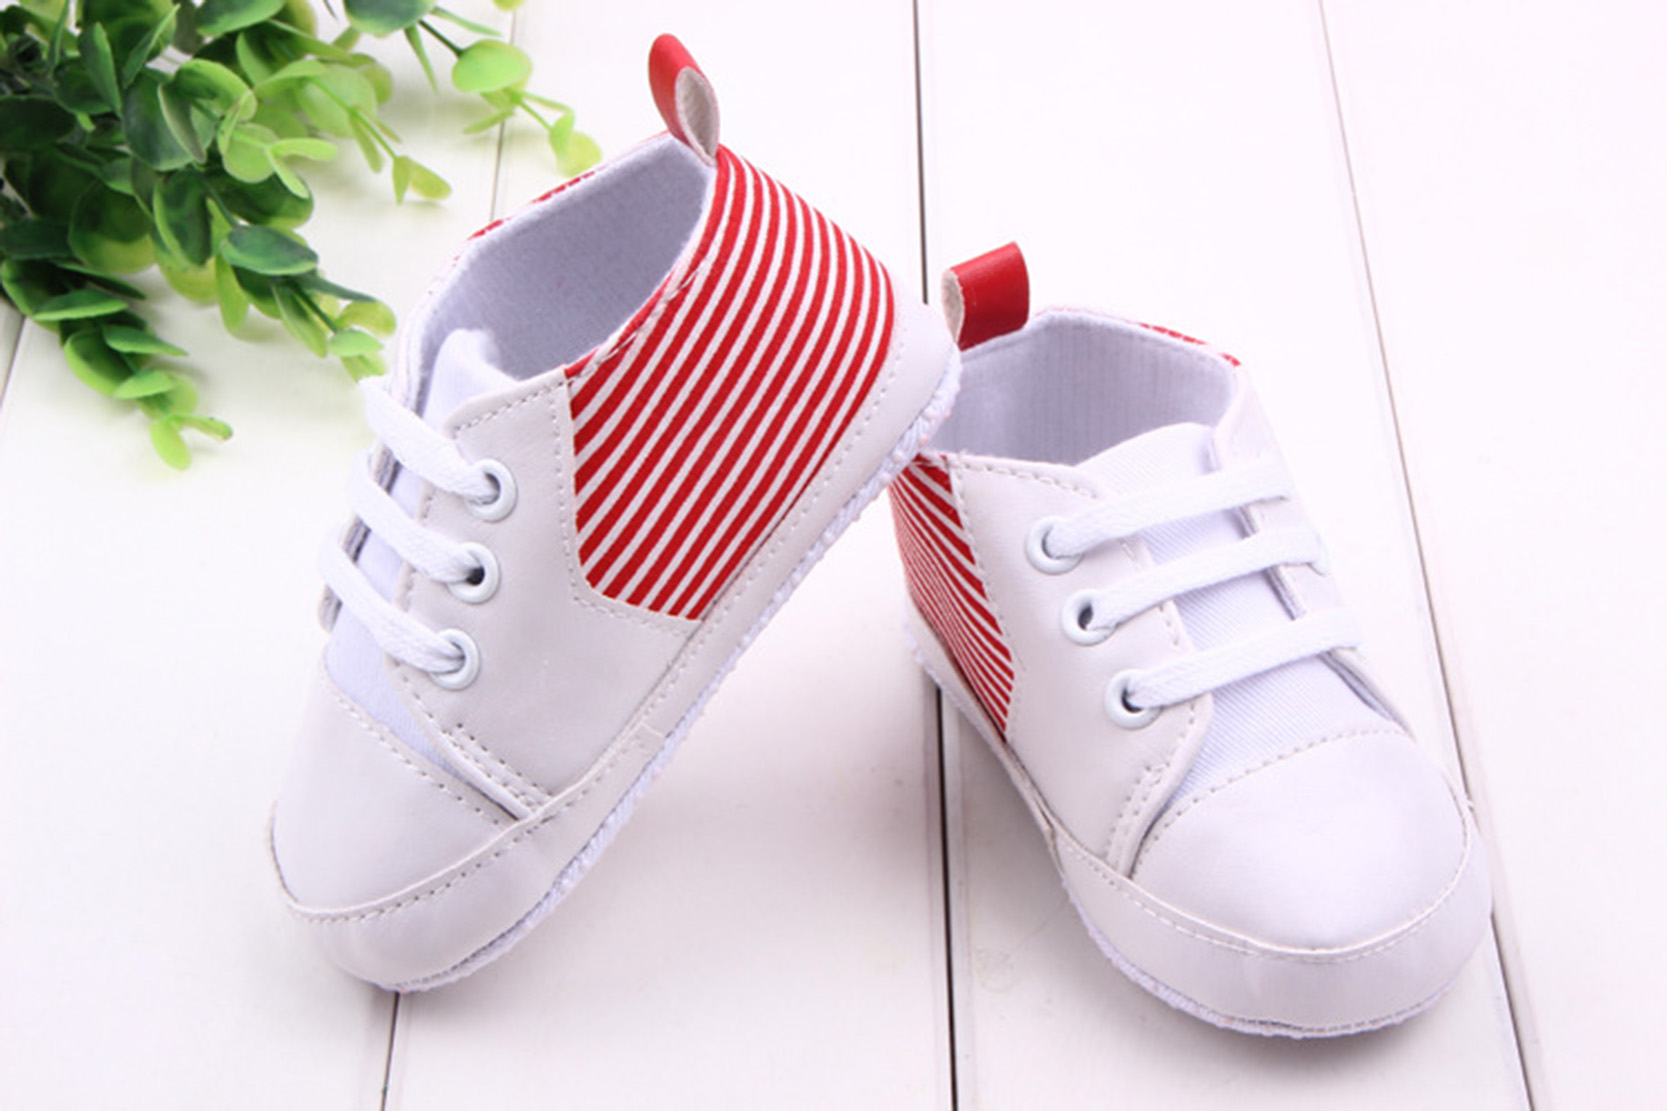 Гаджет  Fashion Baby Shoes 3 Colors White & Stripes Cotton Shoes Soft Bottom Baby Gilr and Boy Shoes Sneakers Wholesale  None Детские товары